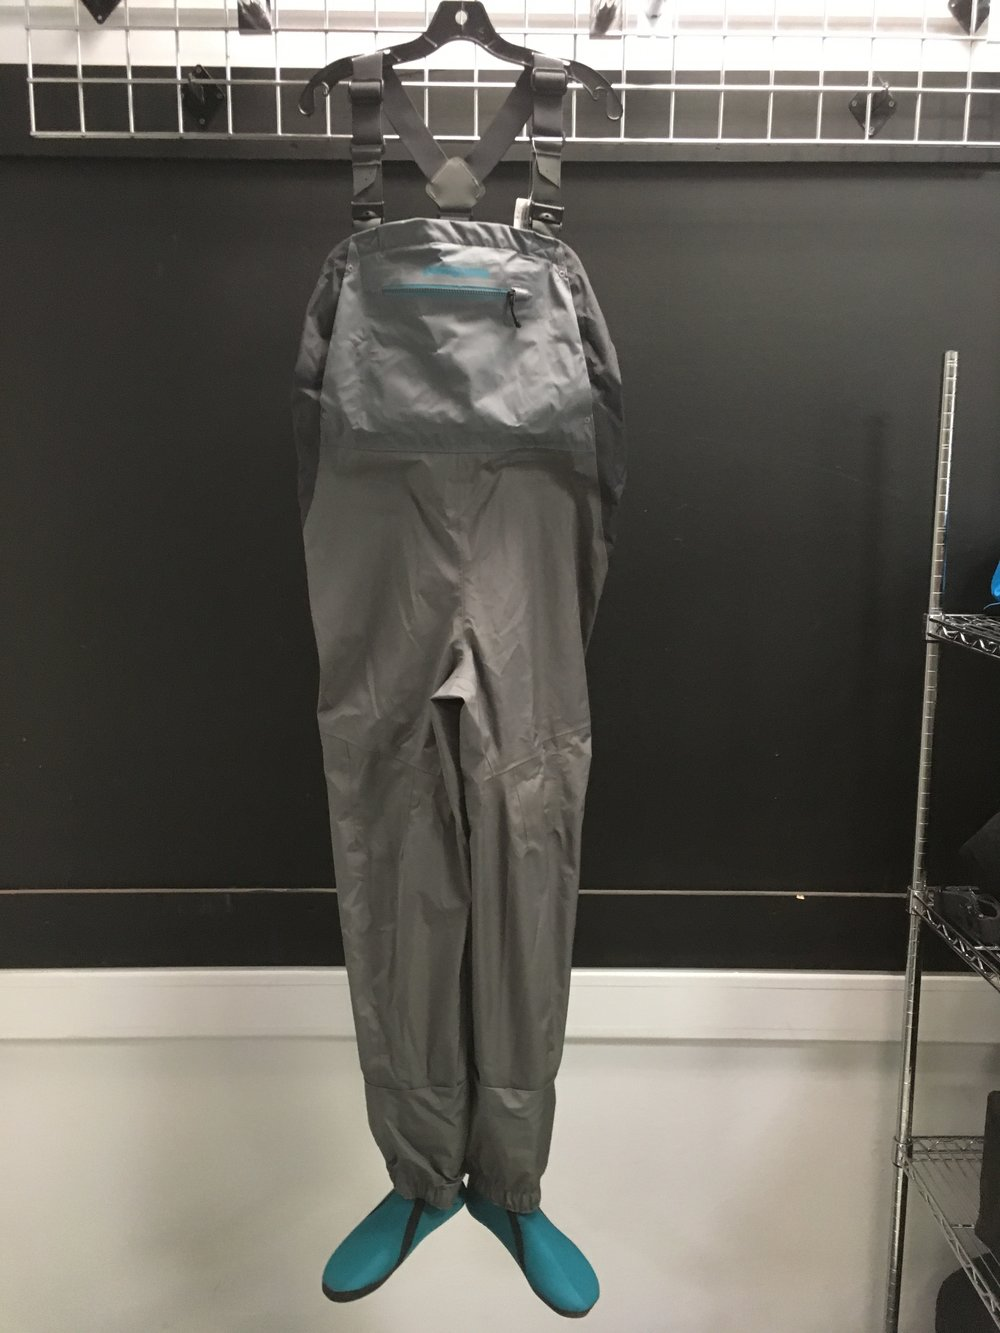 Patagonia's Spring River Waders are designed specifically for the female angler! The waders feature H2no fabric, fully sealed seams, and a reach-through hand warmer pocket. Retail for the waders are listed at $400 but we can get you out in the water for $199! The size is a women's large.